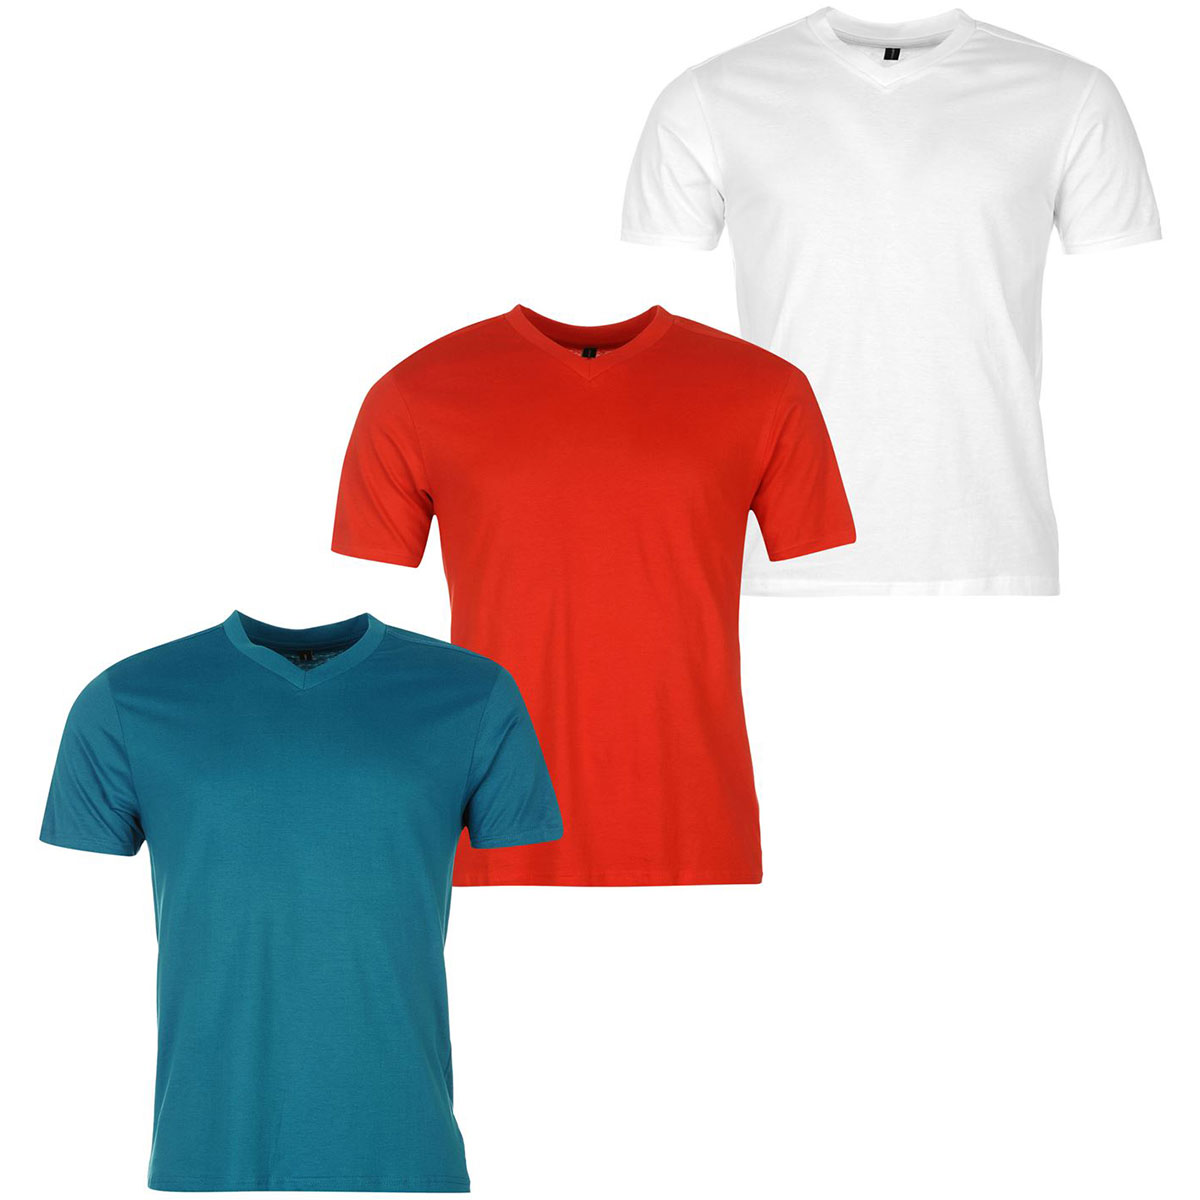 Donnay Men's V-Neck Short-Sleeve Tees, 3-Pack - Various Patterns, 4XL